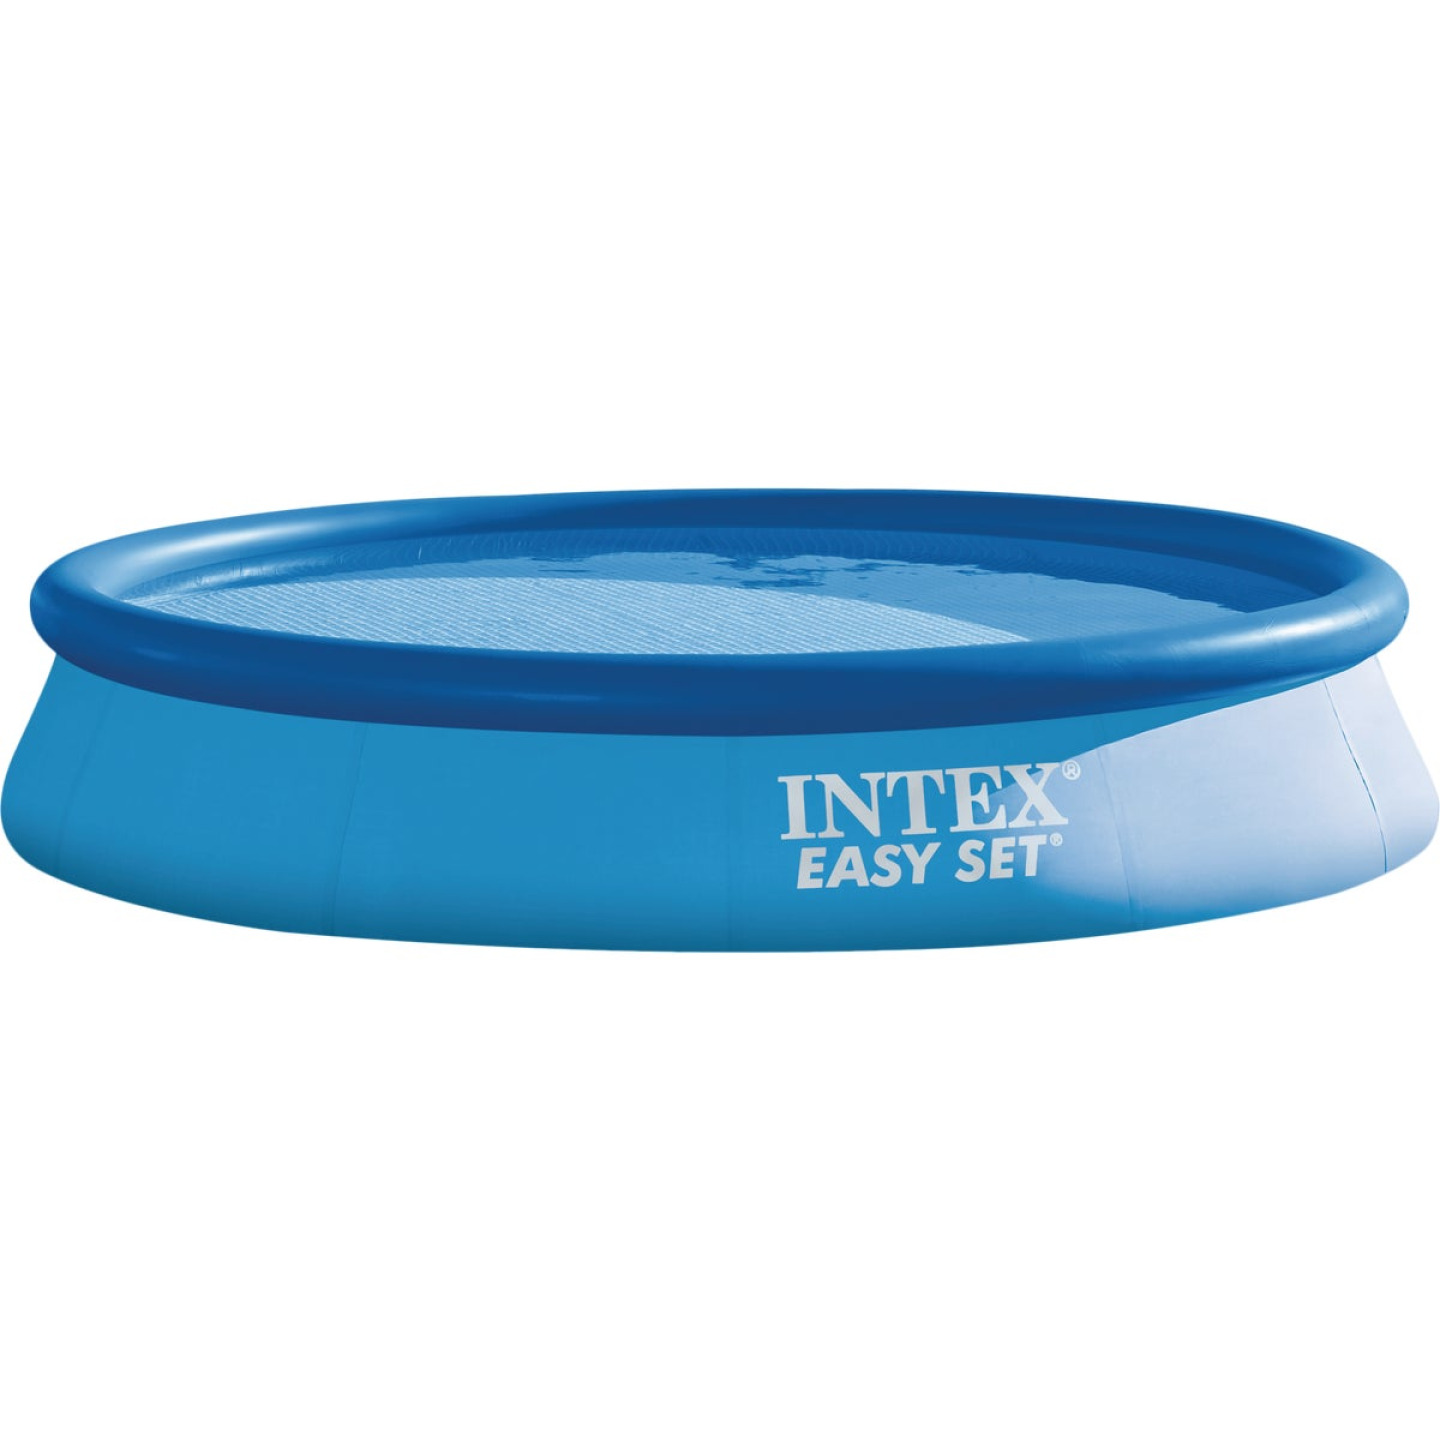 Intex Easy Set 30 In. D. x 12 Ft. Dia. Pool Image 1